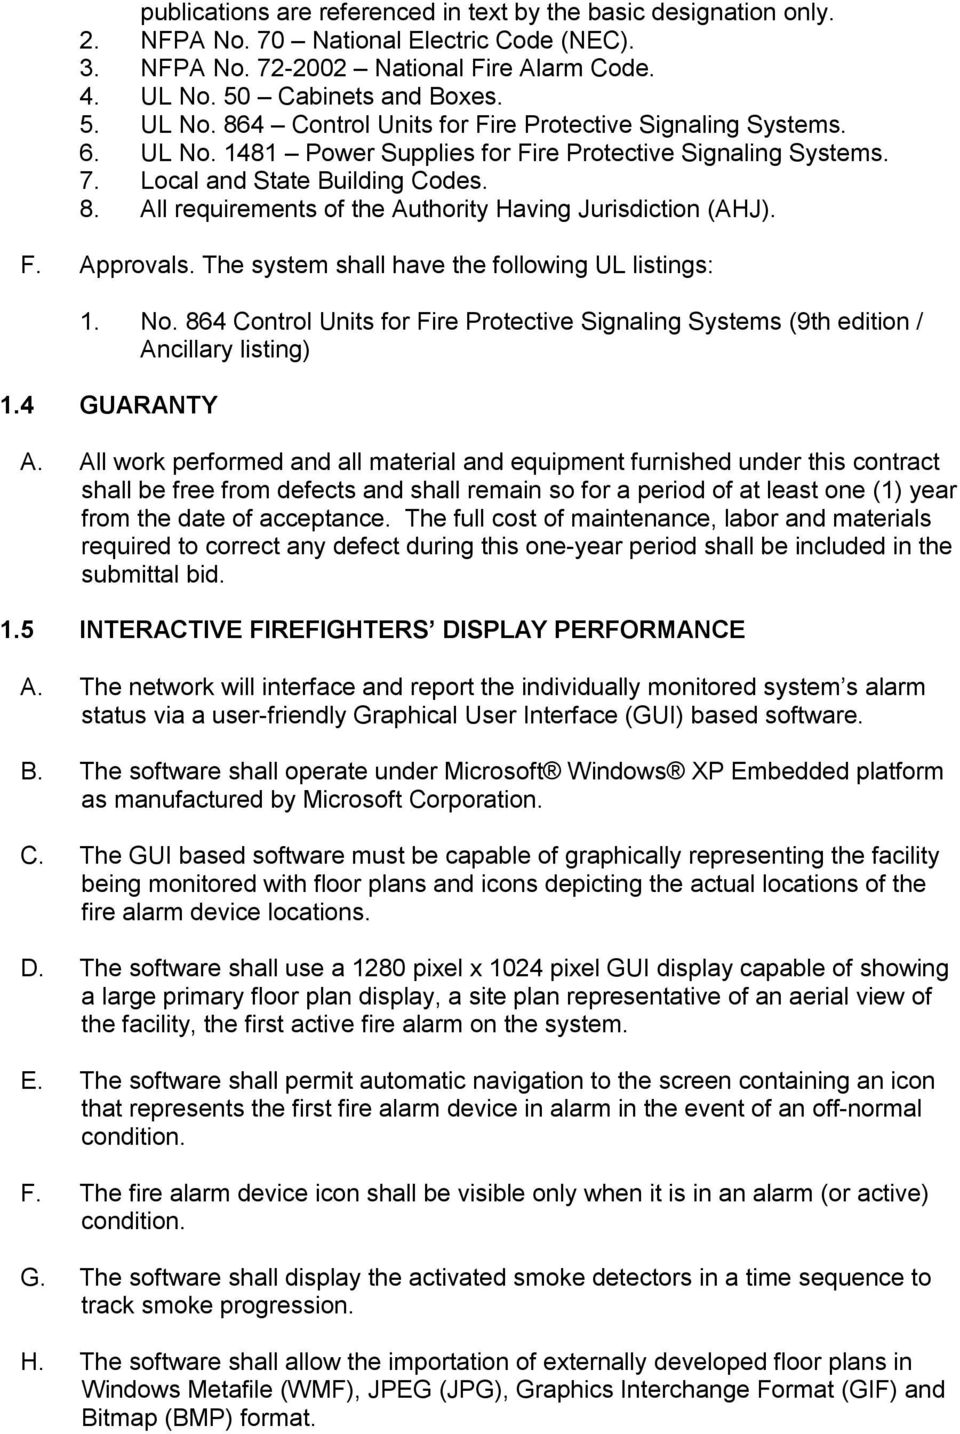 F. Approvals. The system shall have the following UL listings: 1. No. 864 Control Units for Fire Protective Signaling Systems (9th edition / Ancillary listing) 1.4 GUARANTY A.